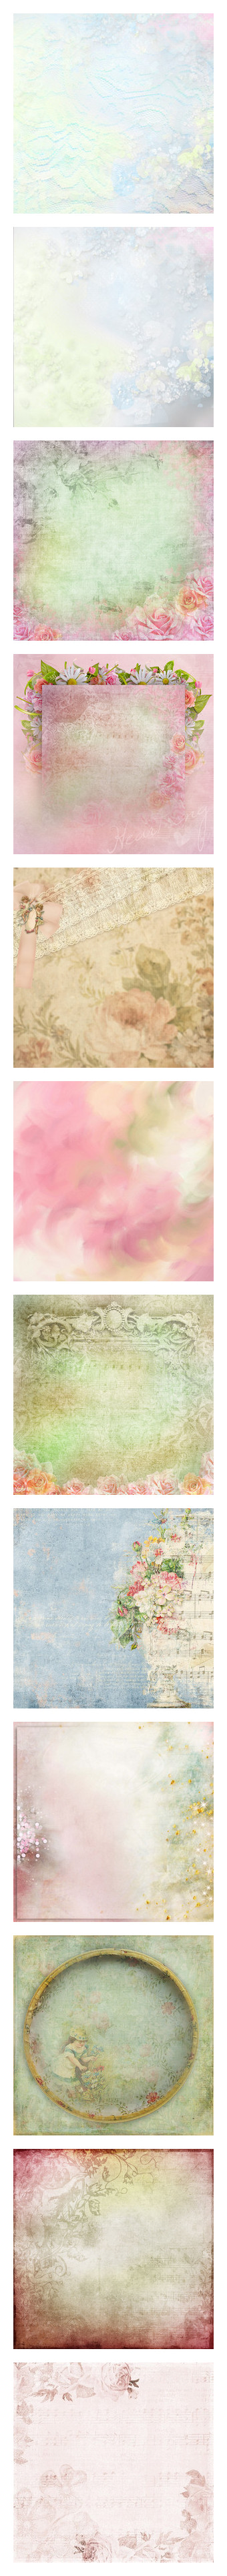 """Pretty papers"" by kristie-miles ❤ liked on Polyvore featuring backgrounds, paper, filler, scrap paper, frames, pink, textures, effects, fillers and art"